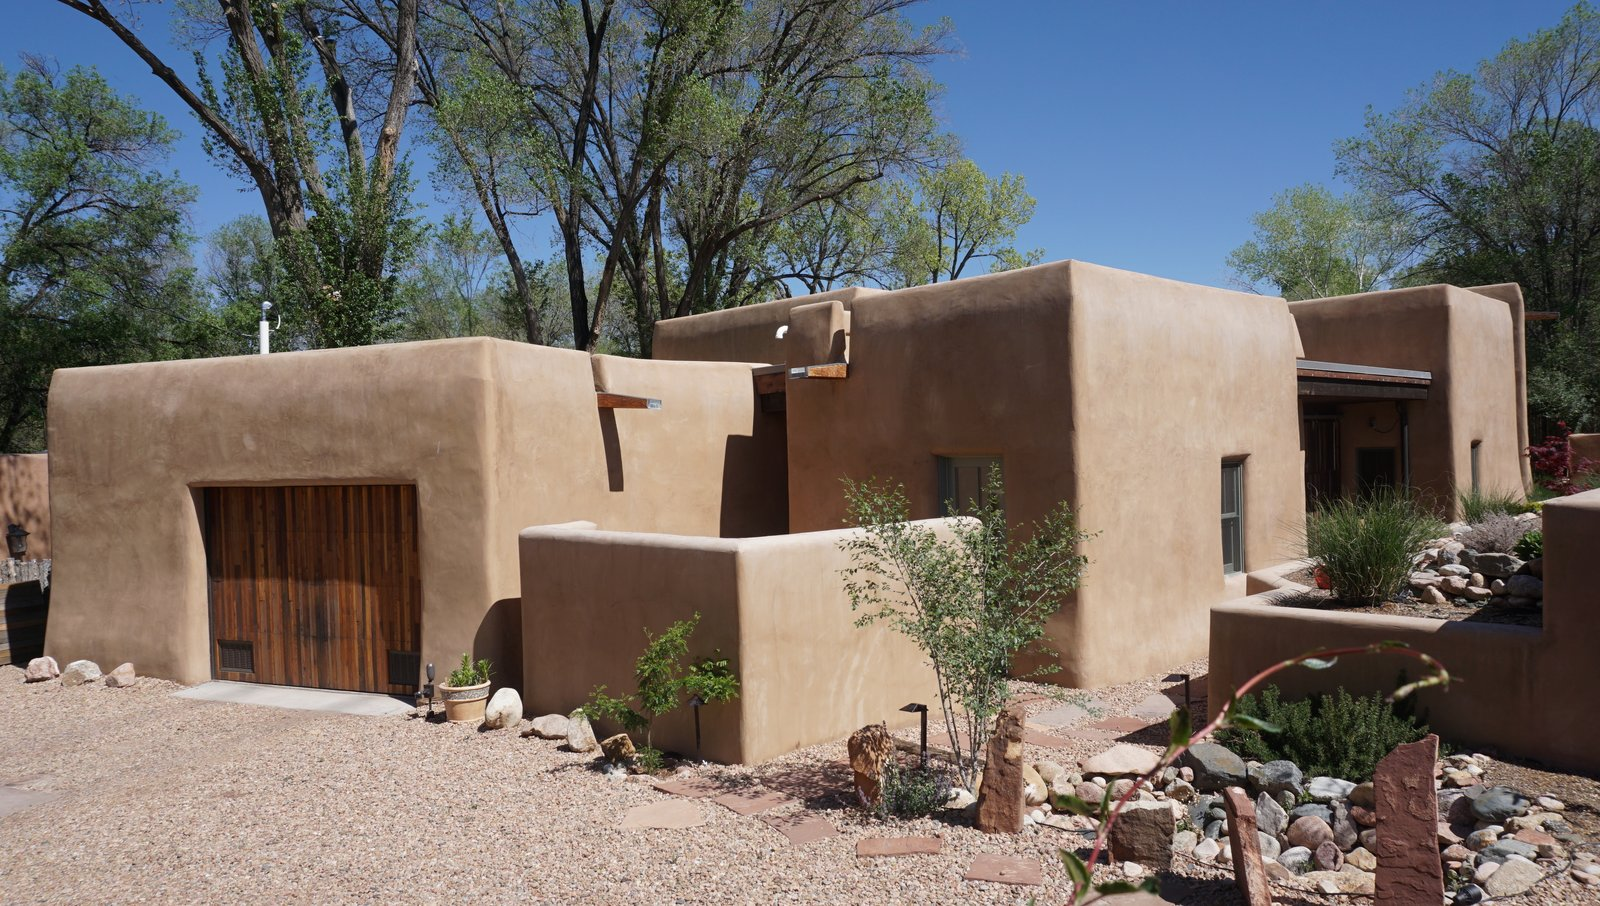 Exterior, House Building Type, Stucco Siding Material, Wood Siding Material, and Stone Siding Material Exterior View from Driveway  Santa Fe East Side Home by Ju Tan